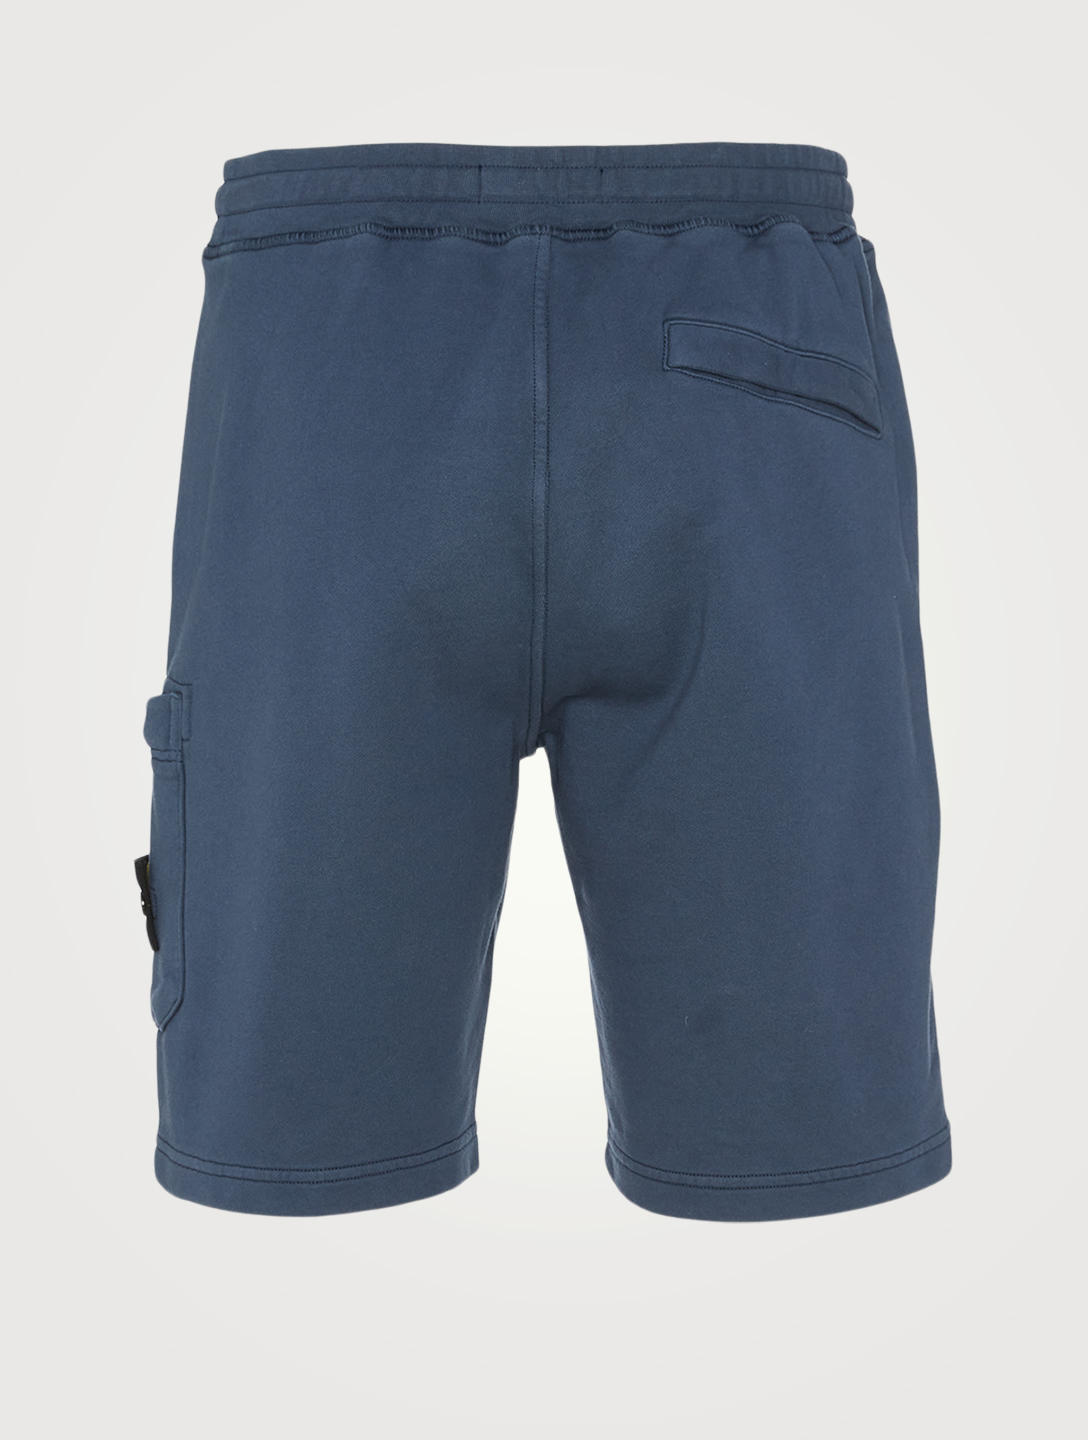 STONE ISLAND Cotton Fleece Shorts Men's Blue